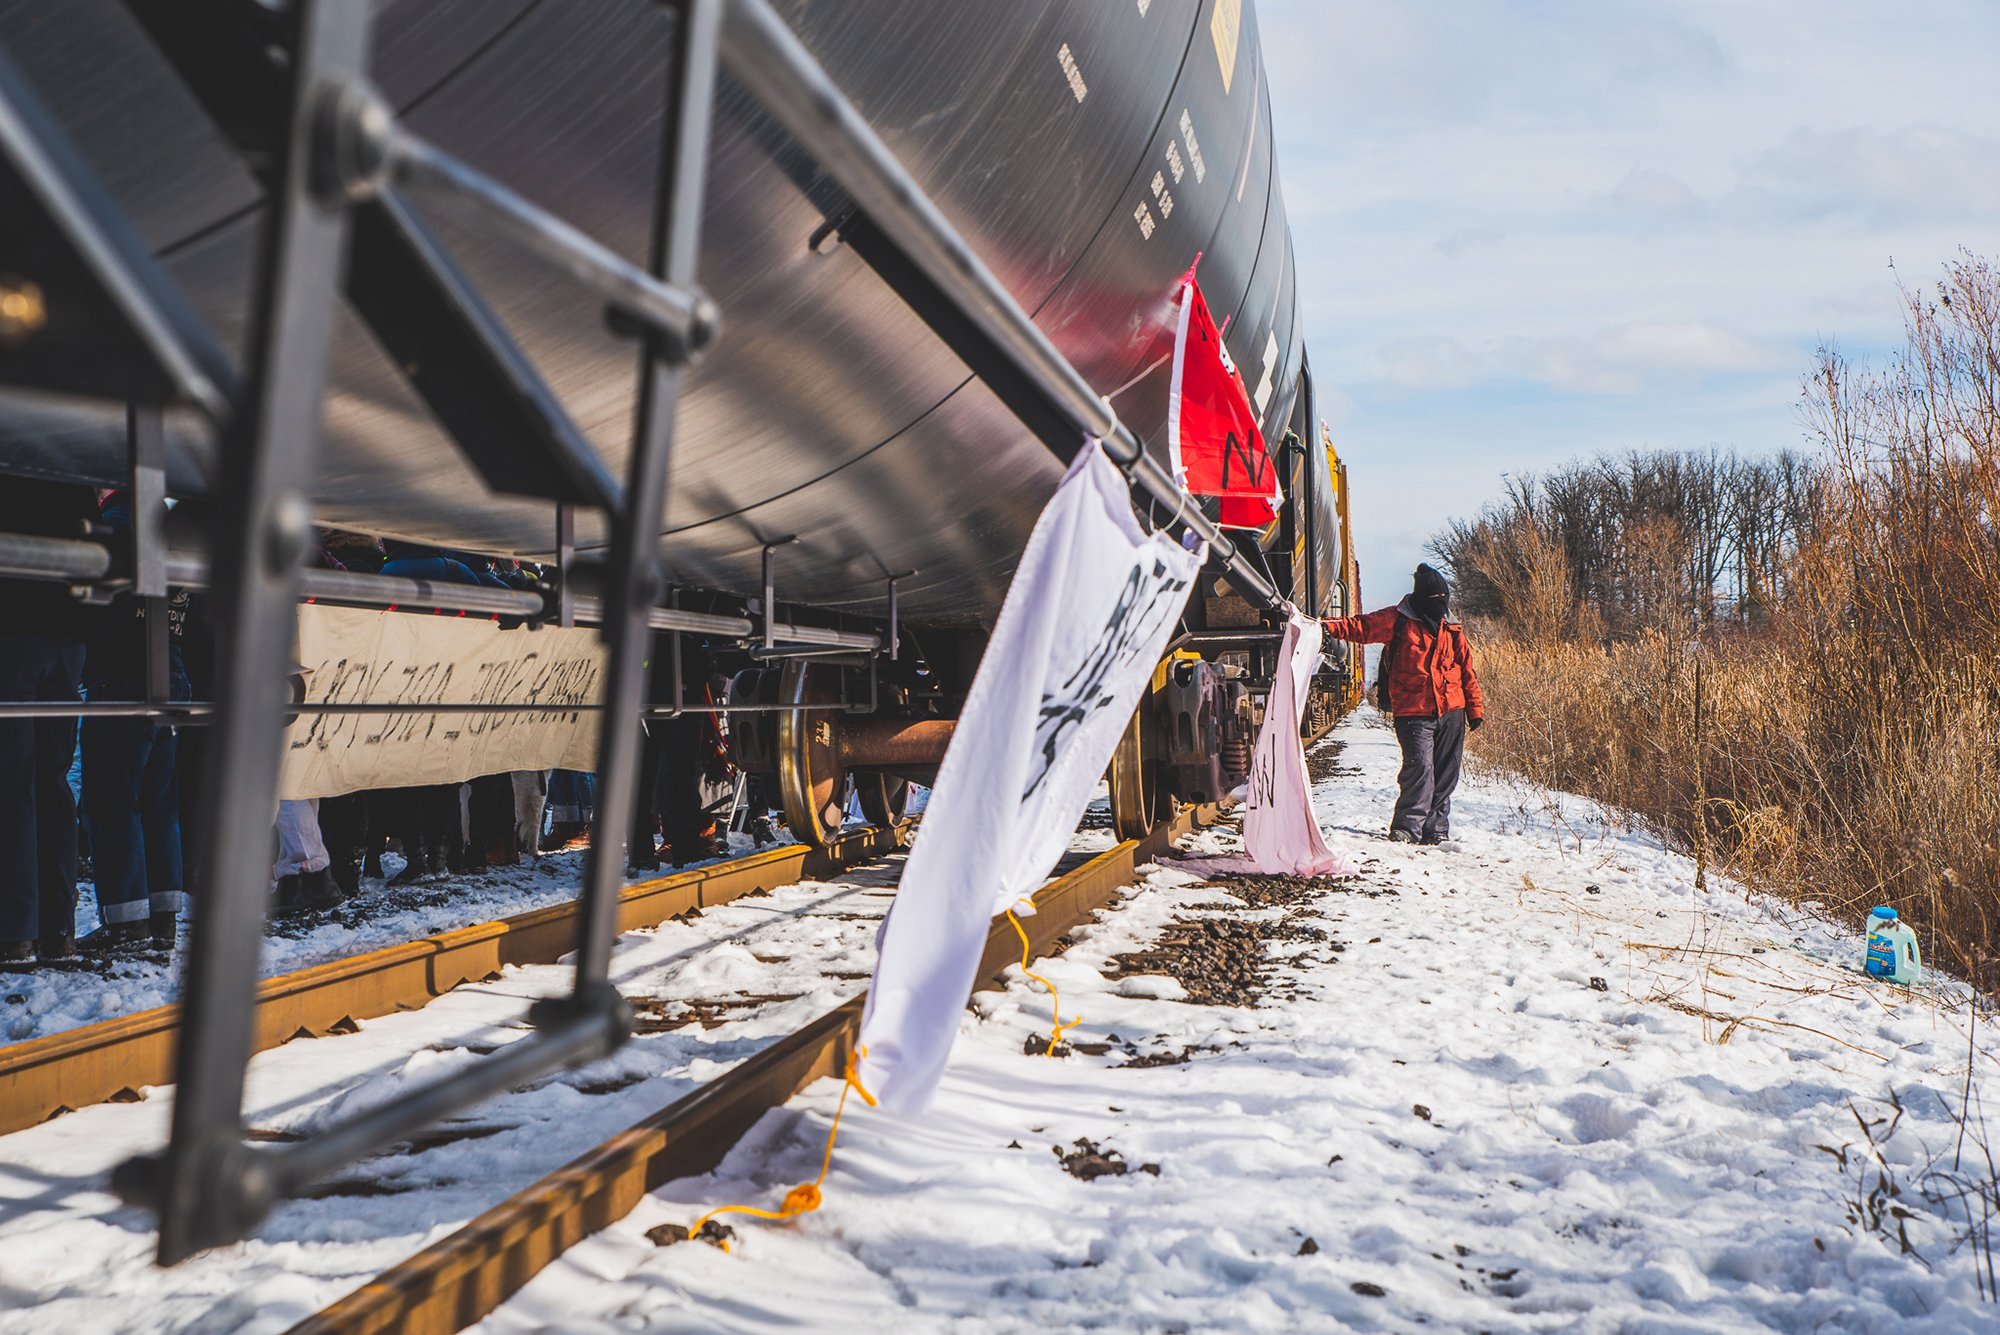 Indigenous People in Canada Are Protesting a Gas Pipeline by Blocking Railways